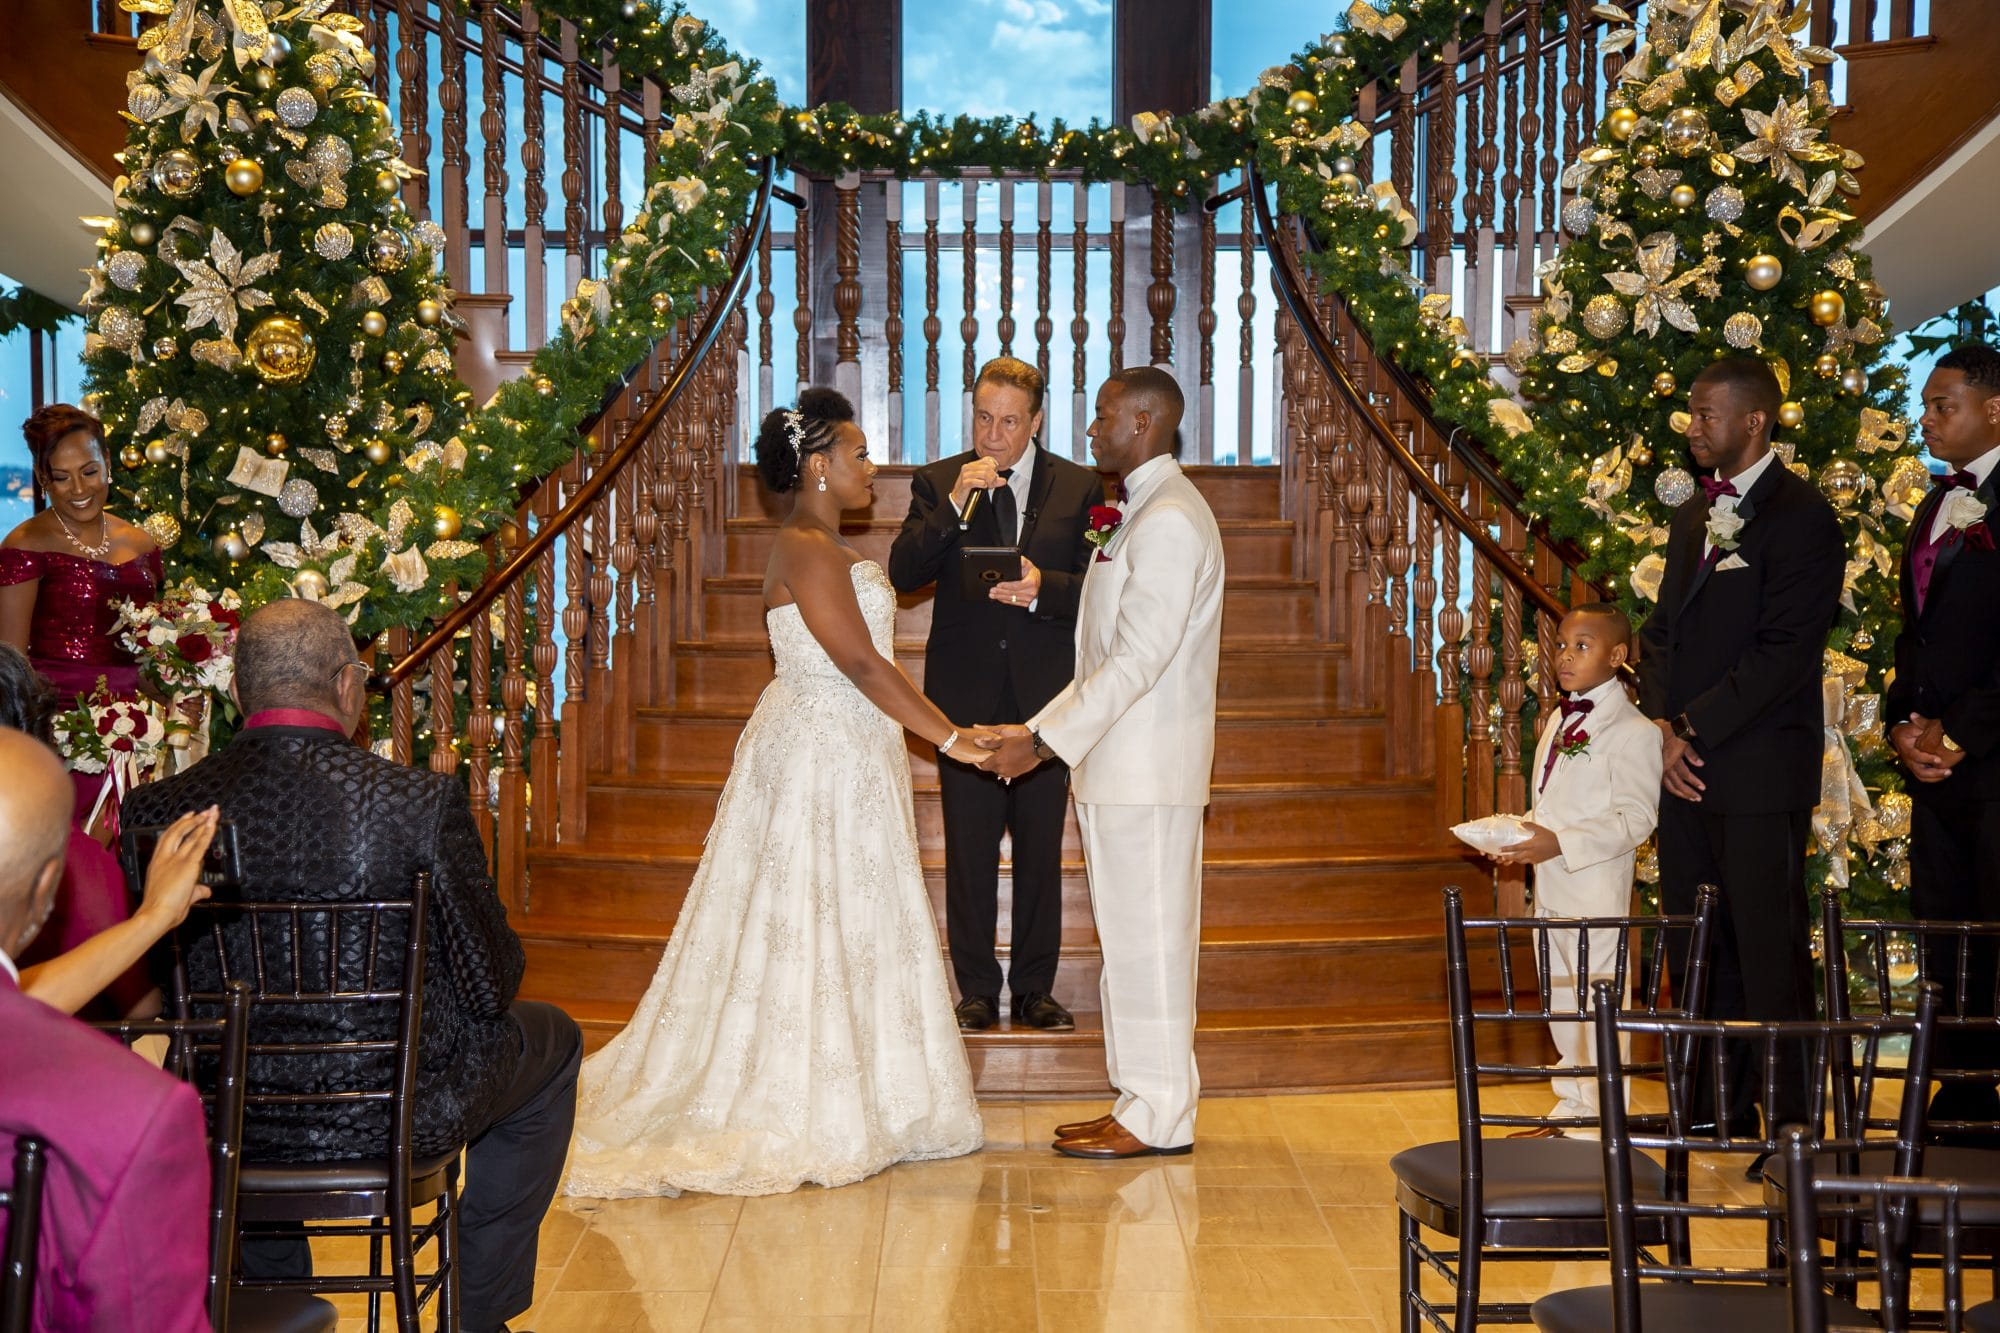 Shaneika and Richard saying their vows in front of gorgeous staircase